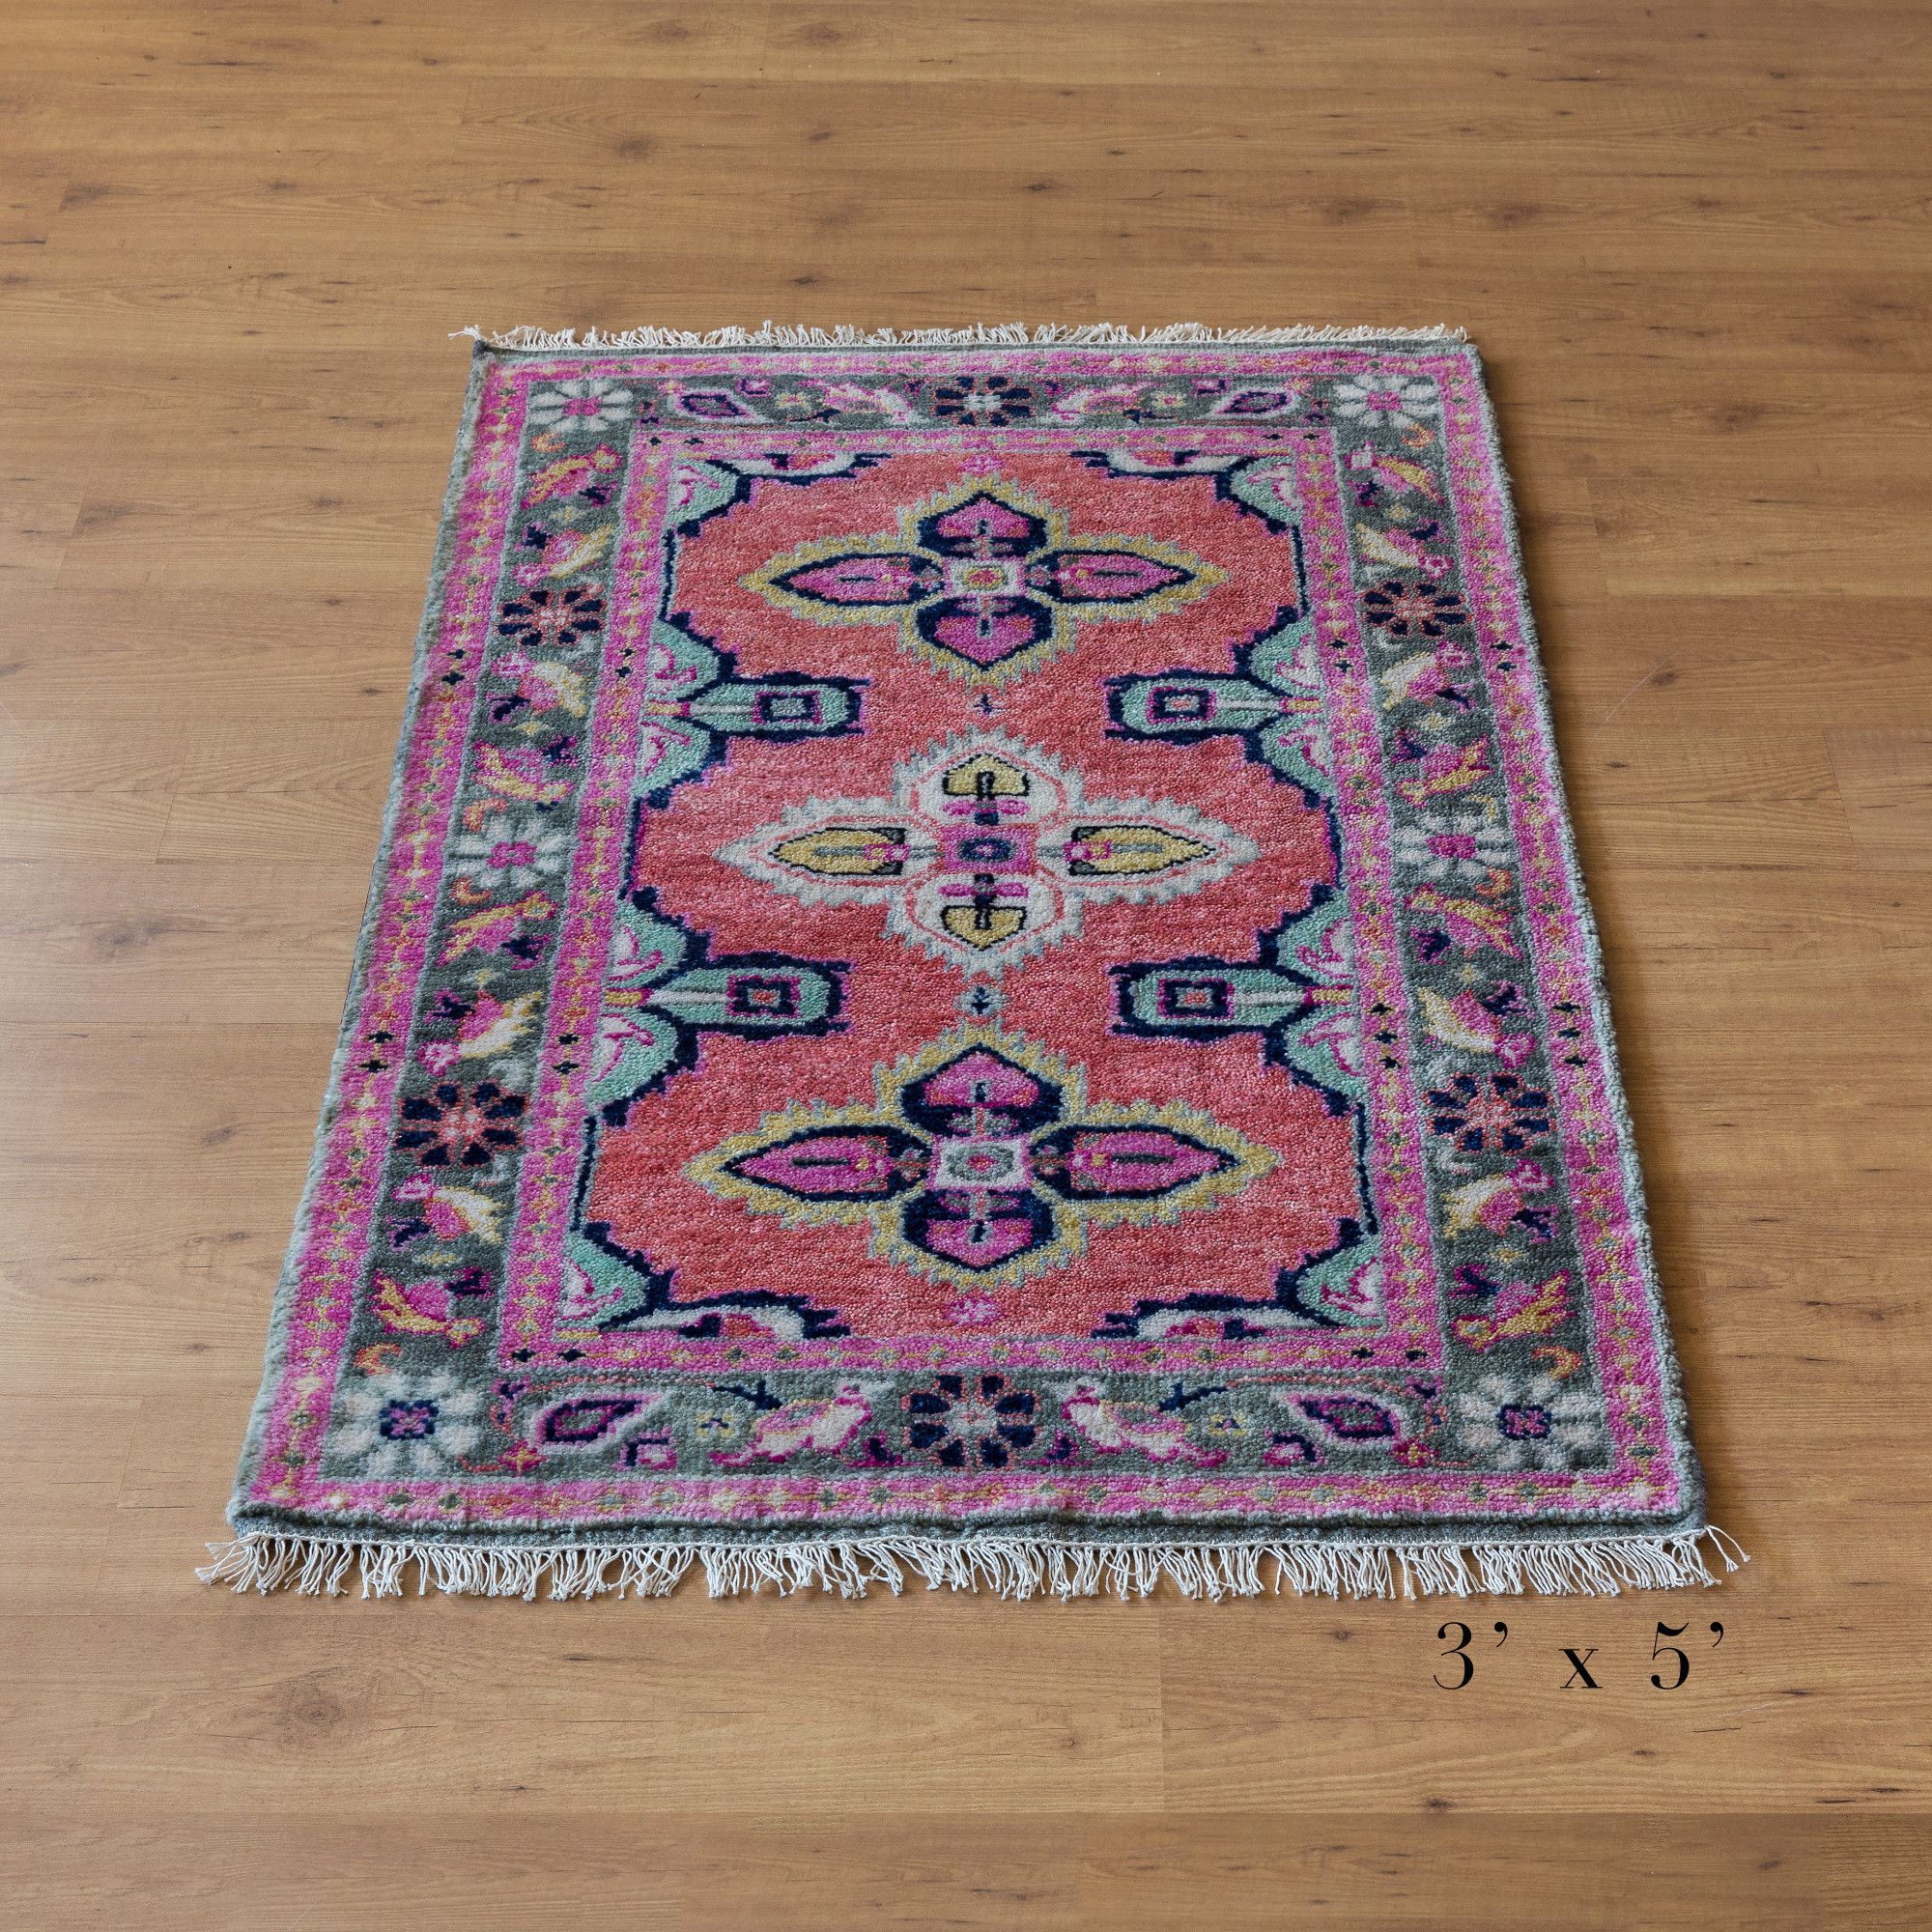 Bathroom Rugs Persian: A Stunning Antique-inspired Persian Rug Created To